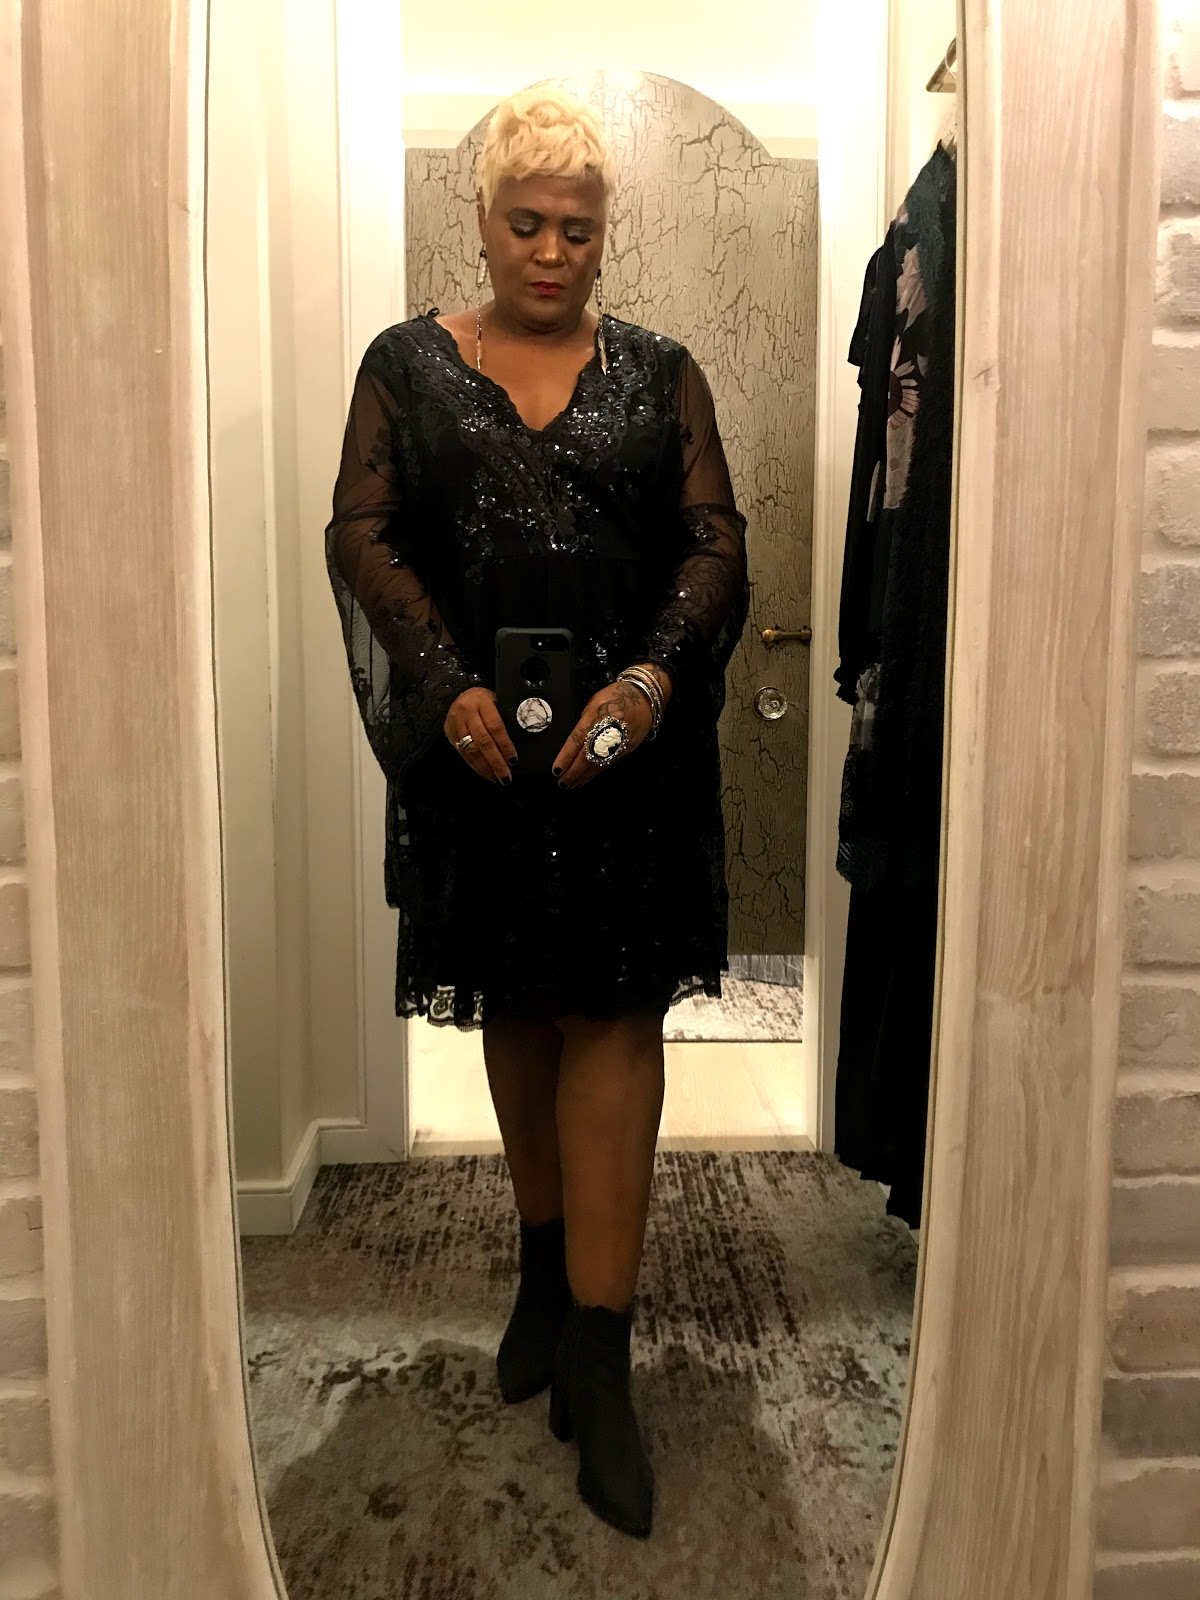 Tangie Bell trying on a really cute lace black dress